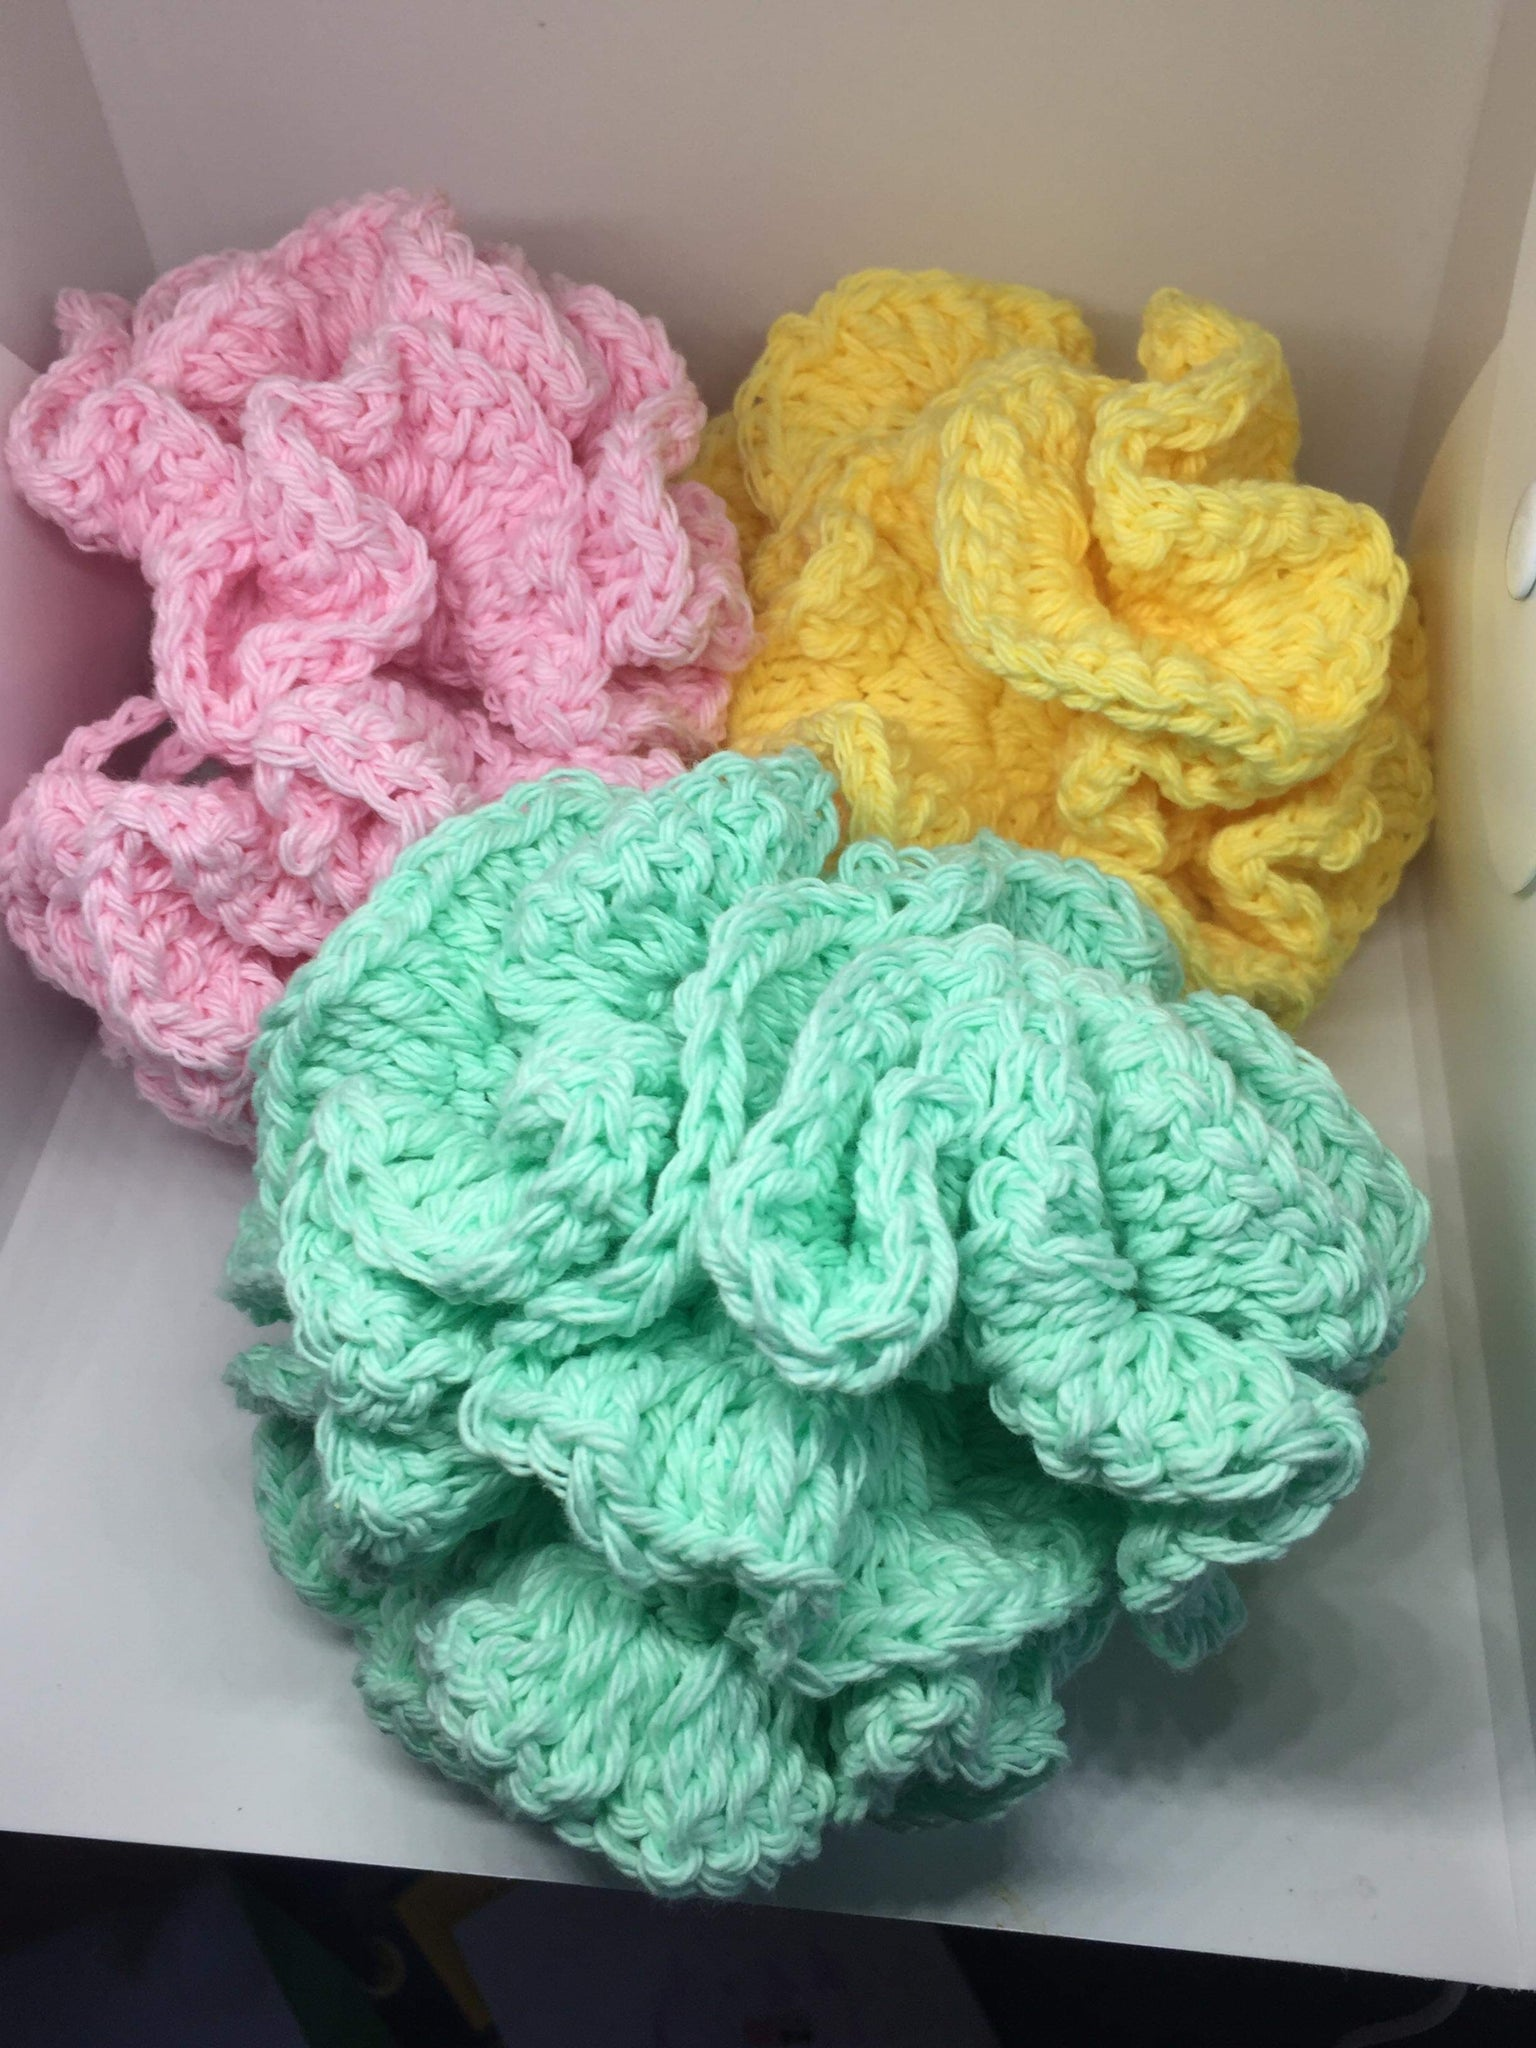 Crocheted Bath Poufs, Crocheted Bath Accessories